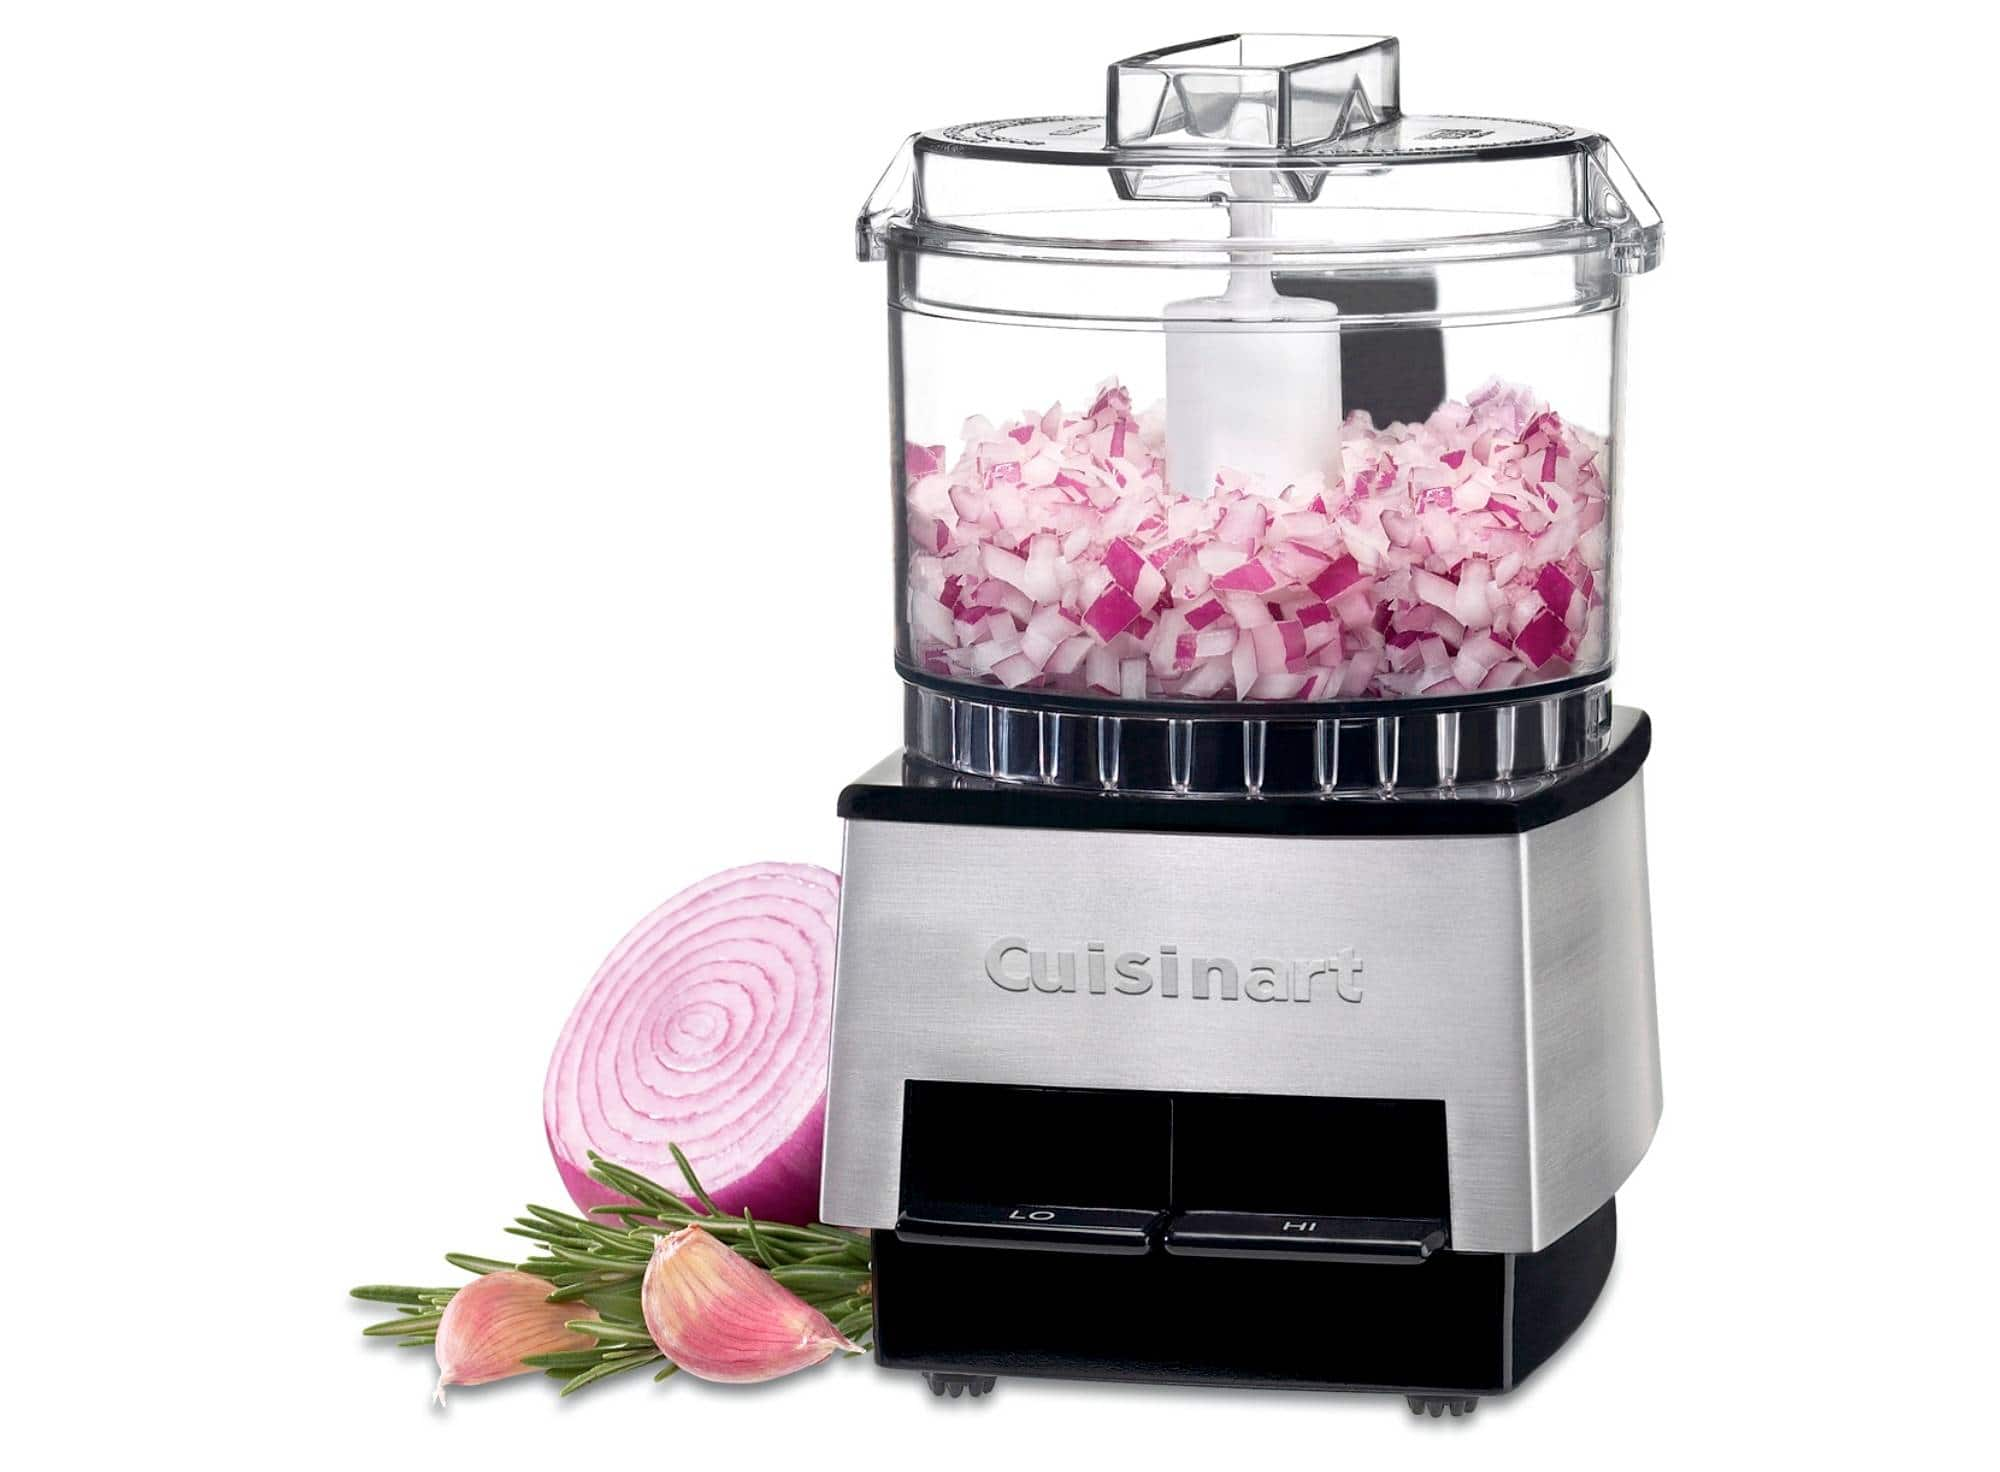 Target Cuisinart Mini prep Stainless Steel food processor $29 with $10 in Giftcard with FS